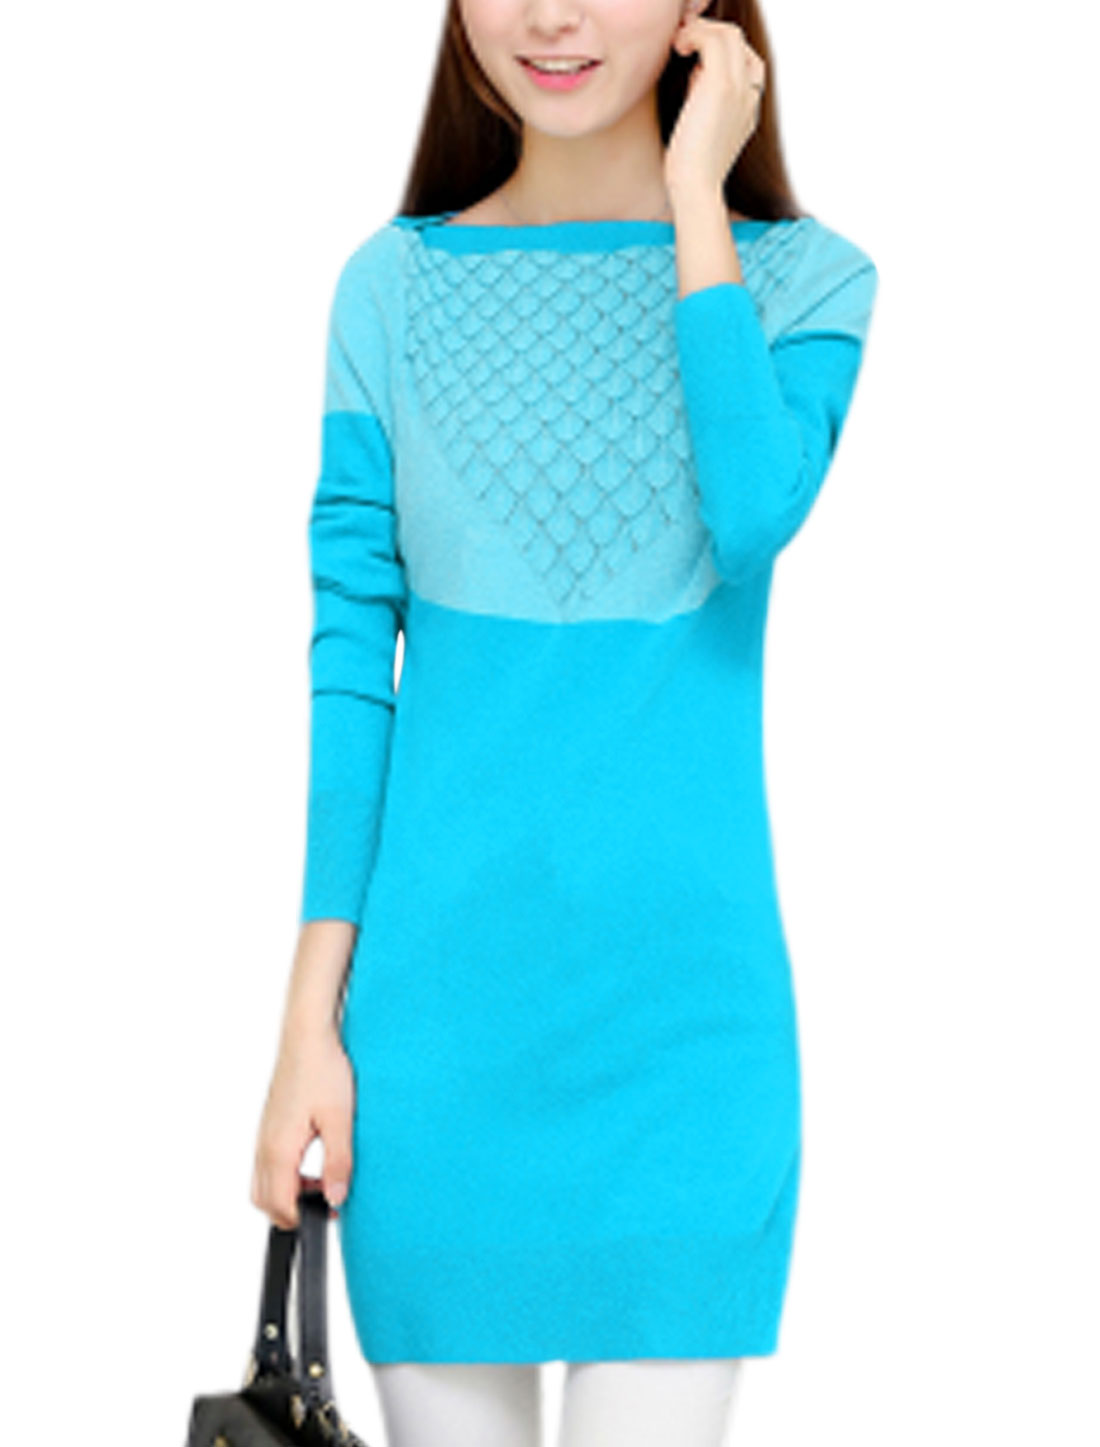 Lady Long Sleeve Color Block Stretchy Knit Top Turquoise Sky Blue S